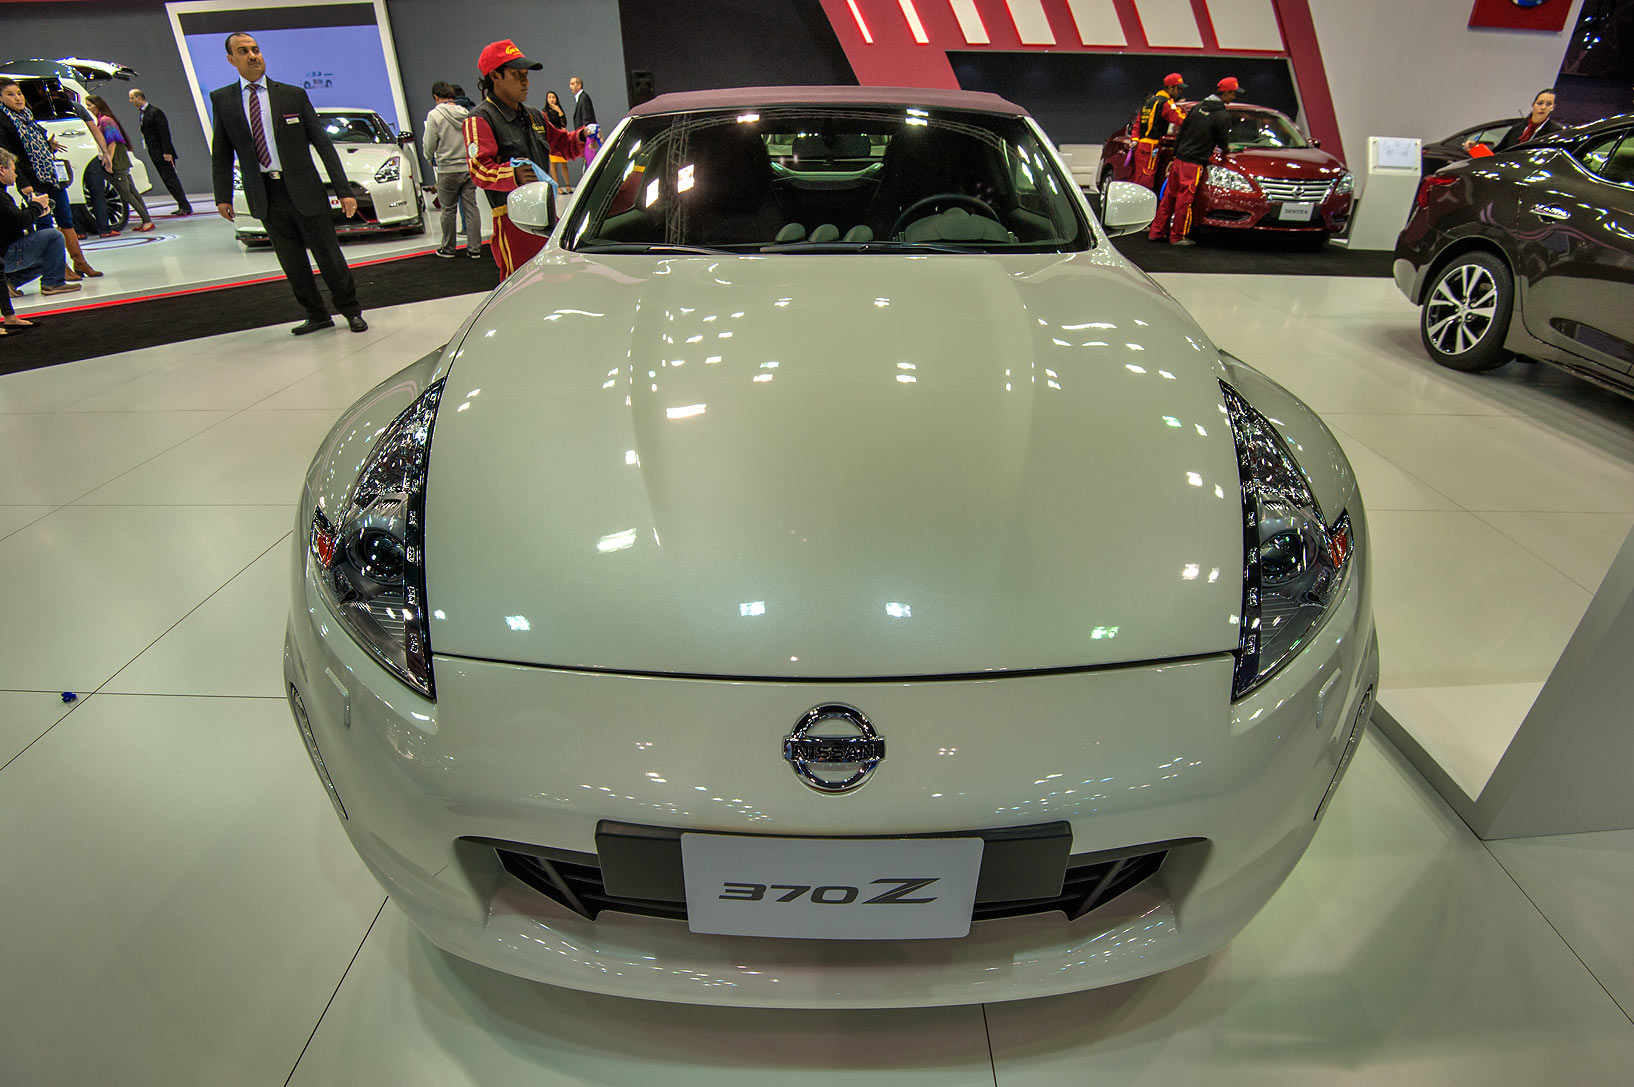 White 370Z car at a motor show in Exhibition and...near City Center mall. Doha, Qatar